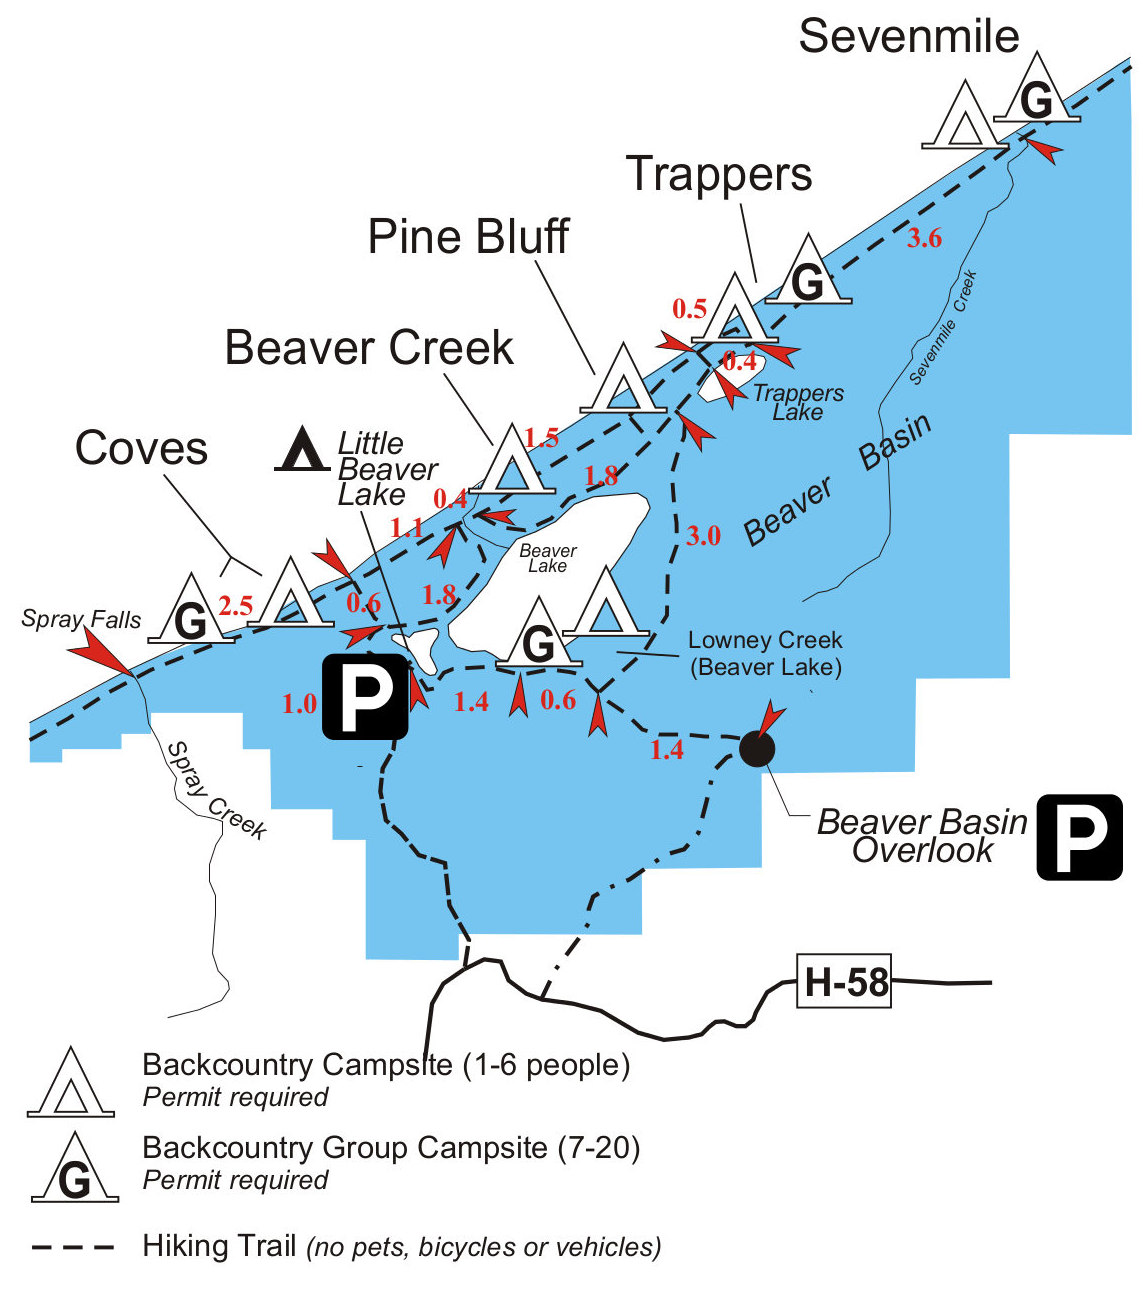 Pictured Rocks Map Pictured Rocks Maps | NPMaps.  just free maps, period.